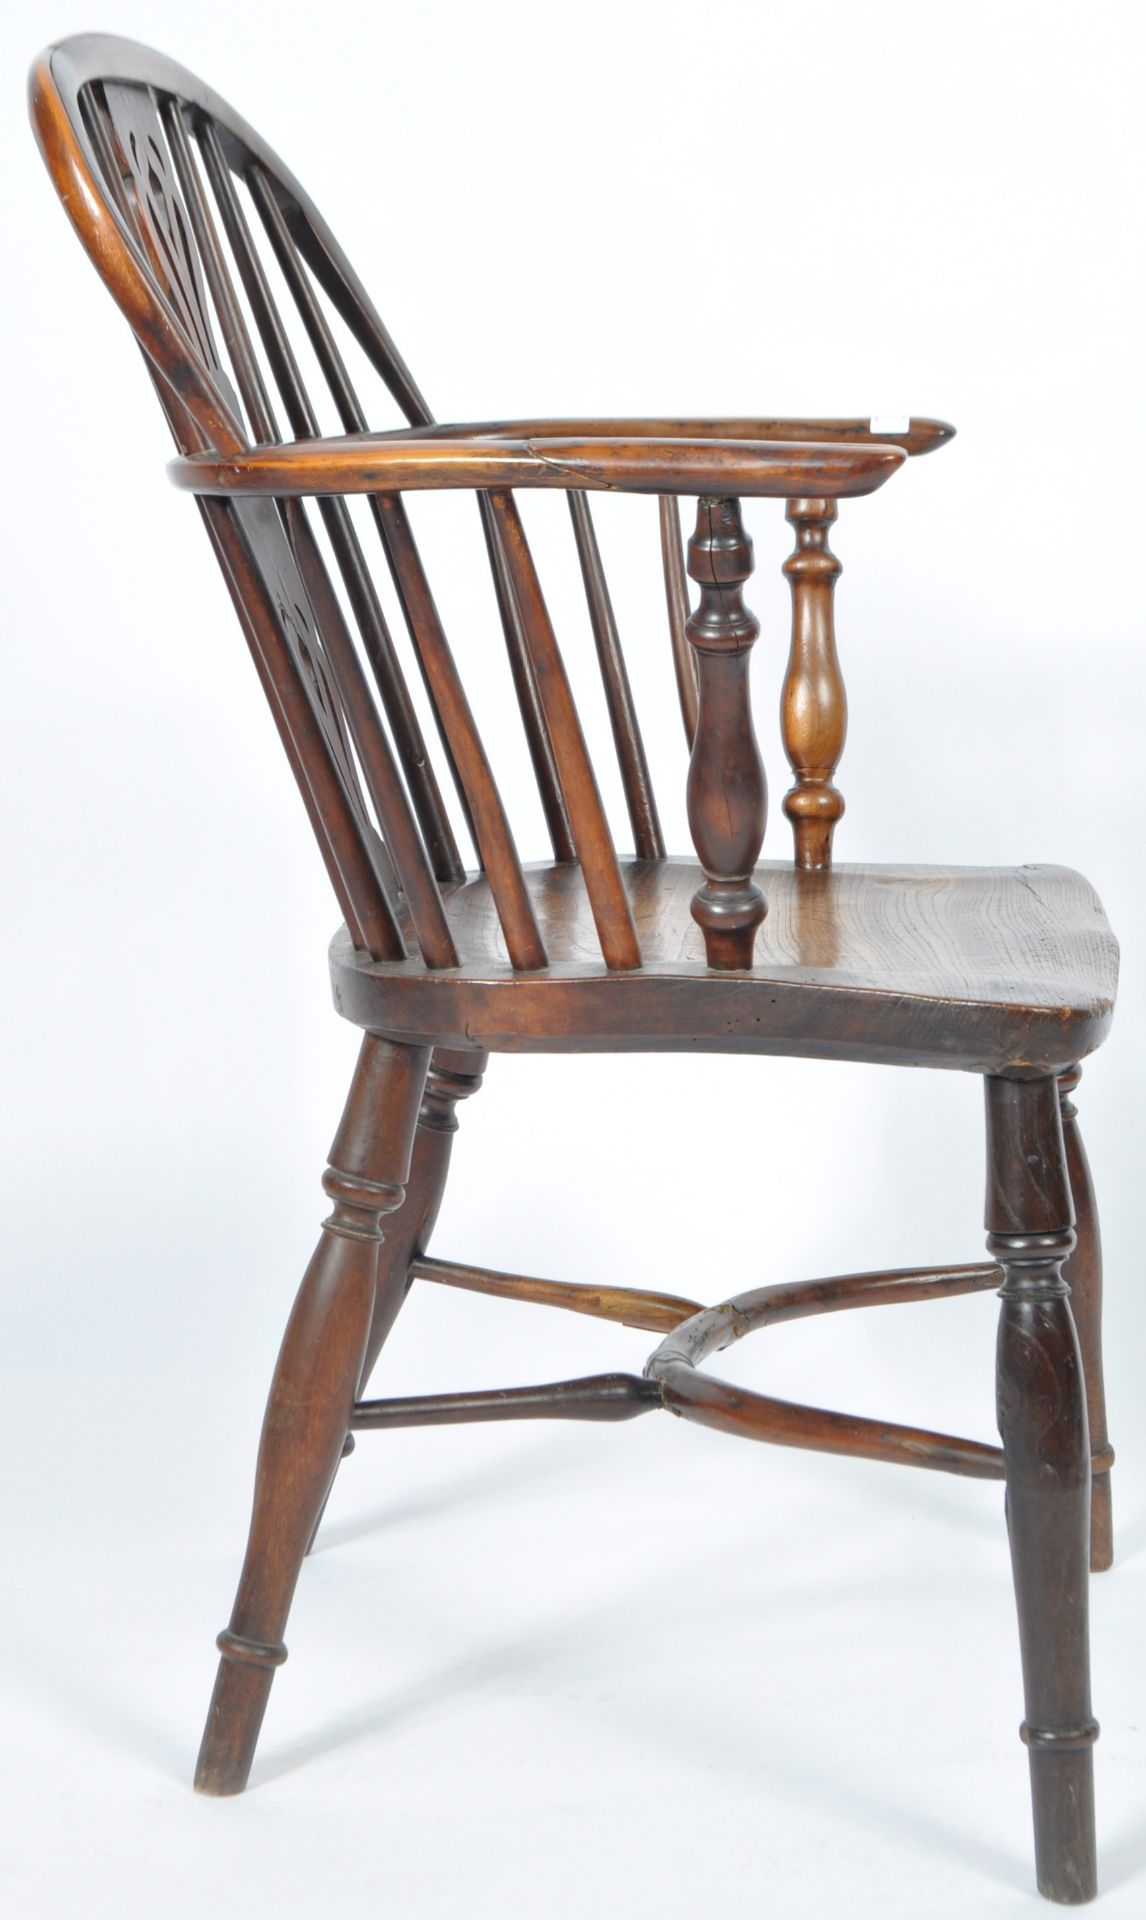 ANTIQUE GEORGIAN YEW AND ELM CRINOLINE WINDSOR ARMCHAIR - Image 6 of 9